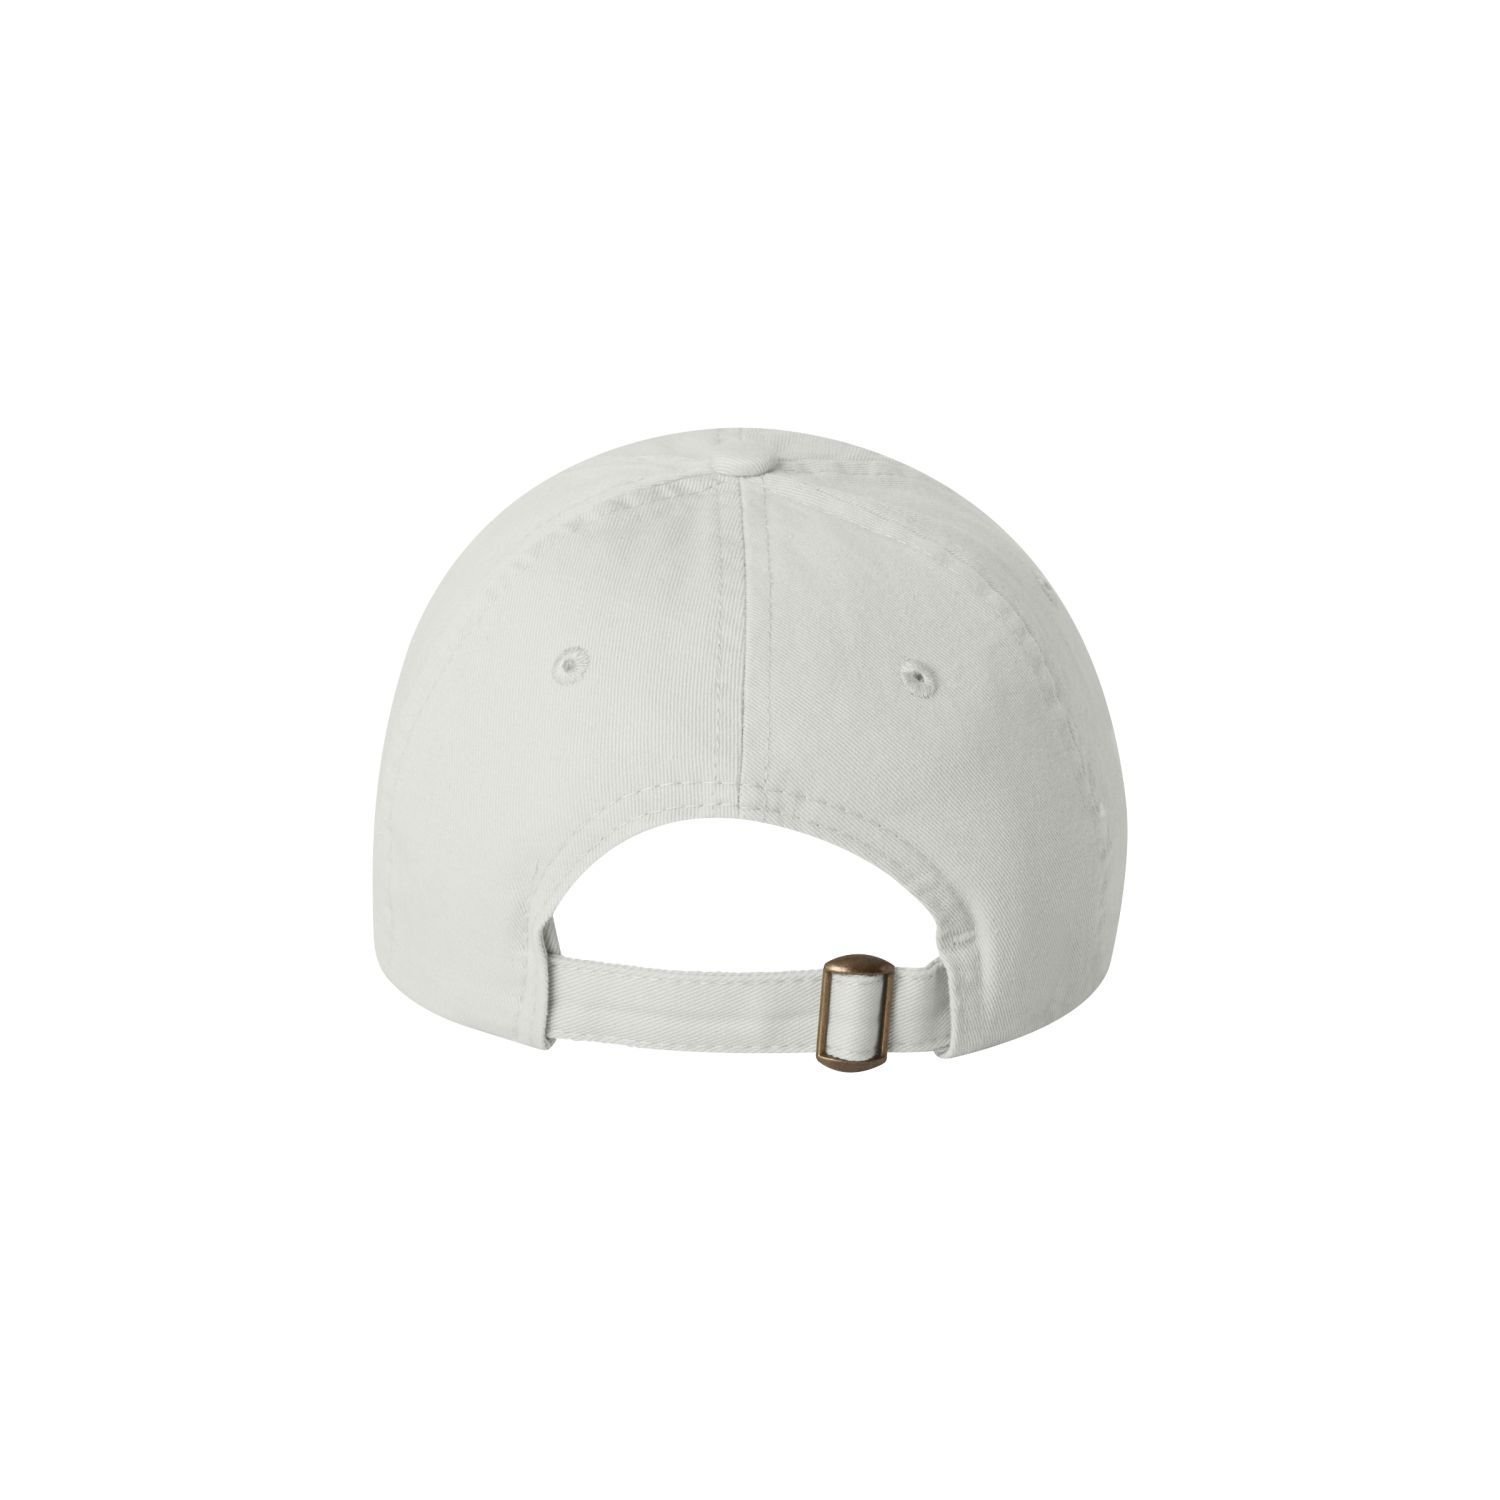 1da0f4e9 Just Vibe Swoosh White w/ Gold Dad Hat at Amazon Men's Clothing store: